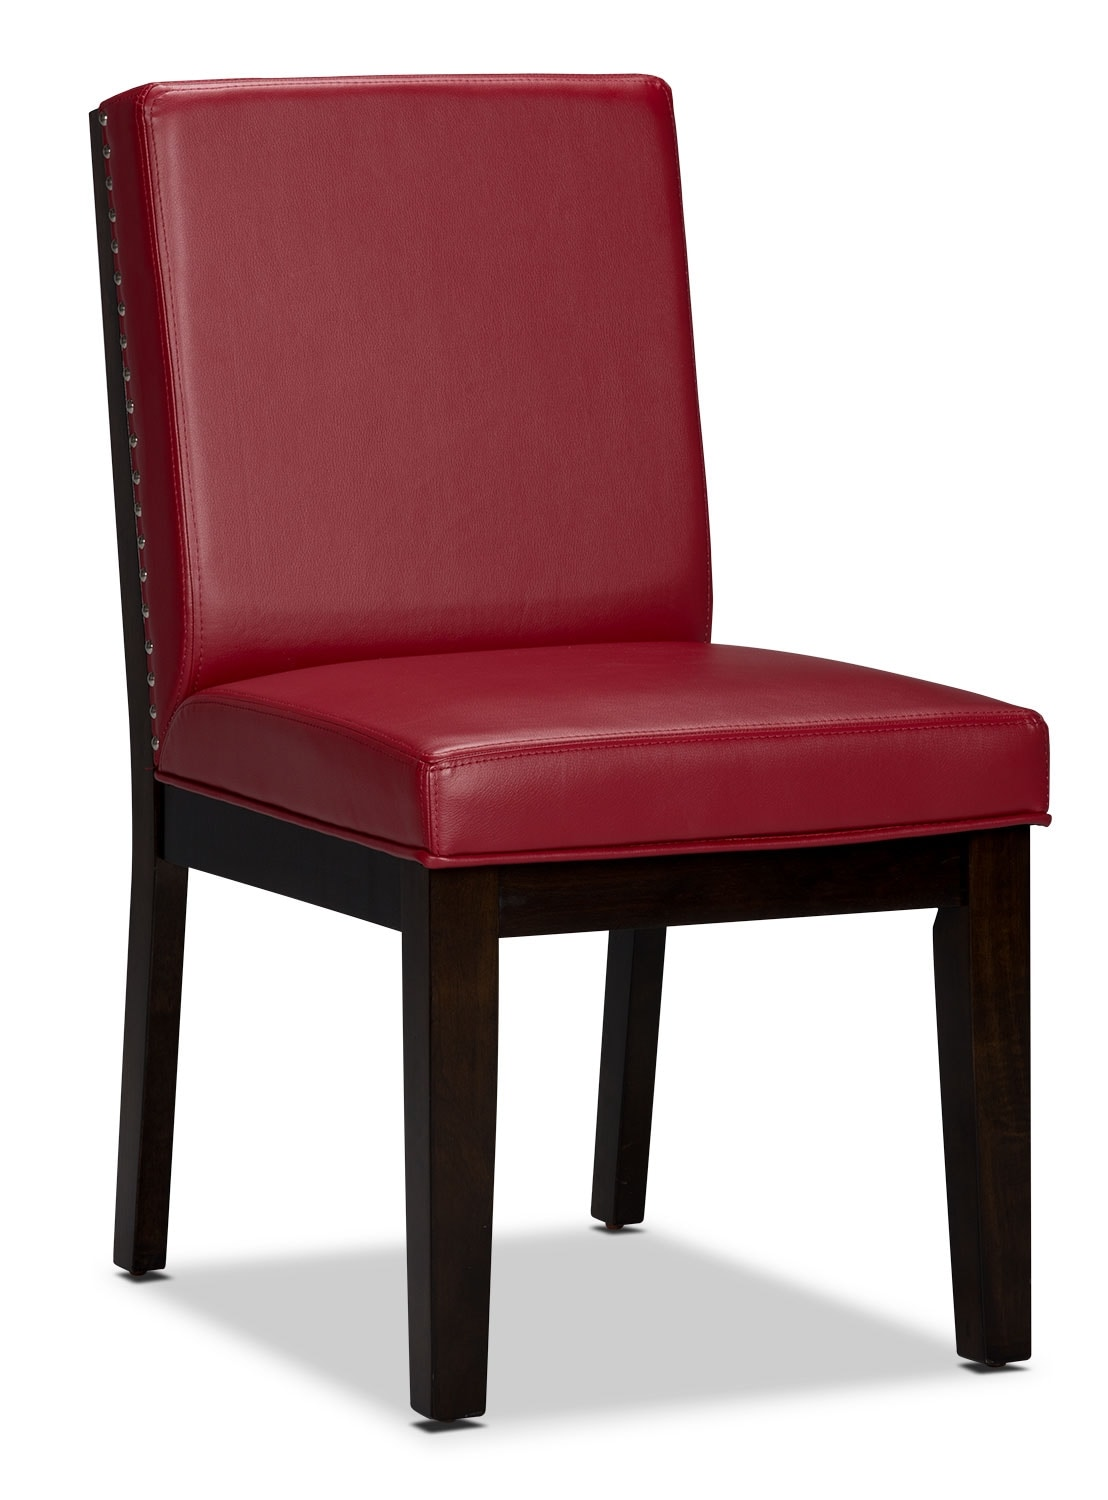 Couture Side Chair - Red